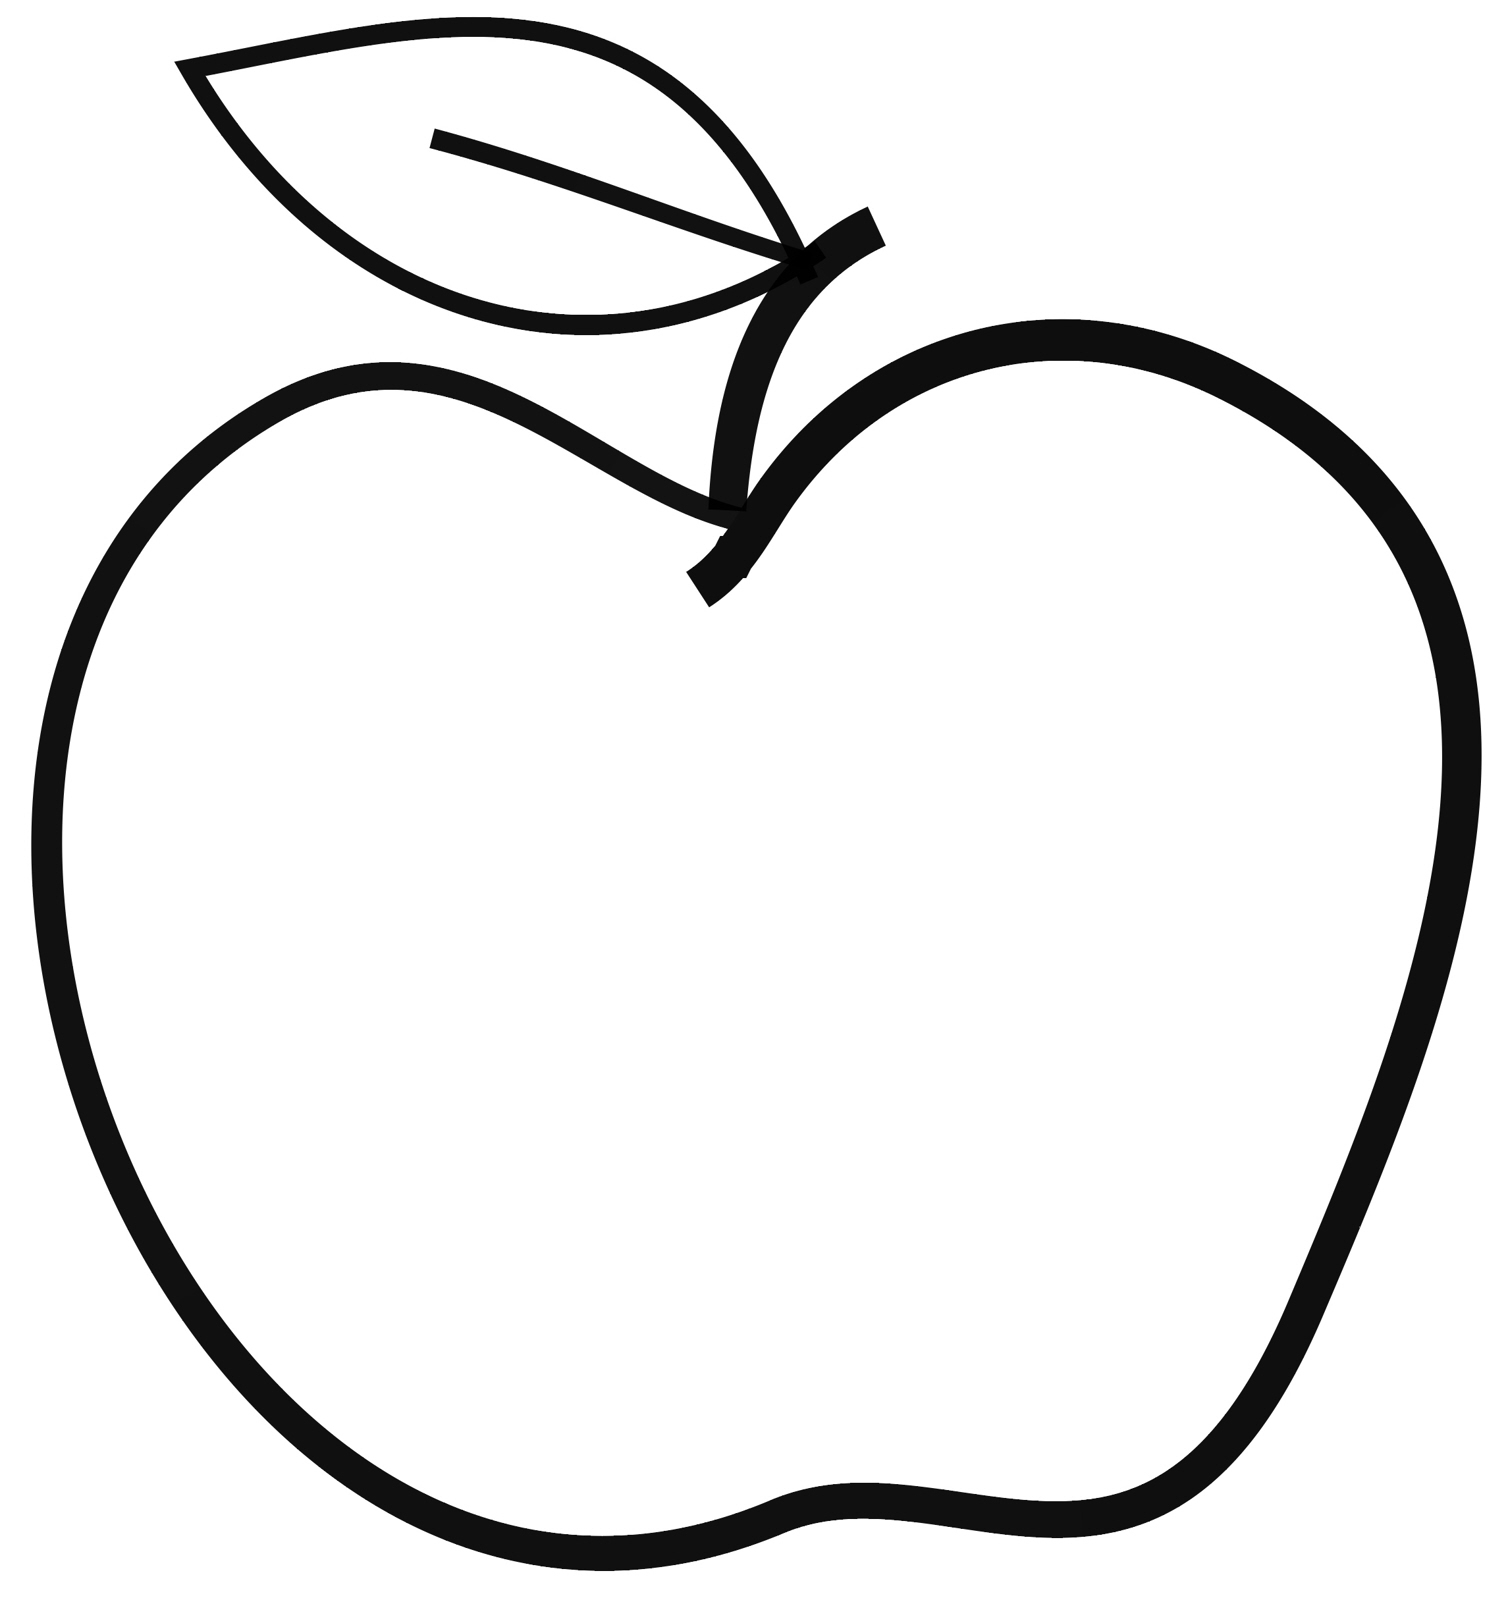 Apple sketch clipart image free library Free photo: Apple Clipart - Graphic, Sketch, Clipart - Free Download ... image free library